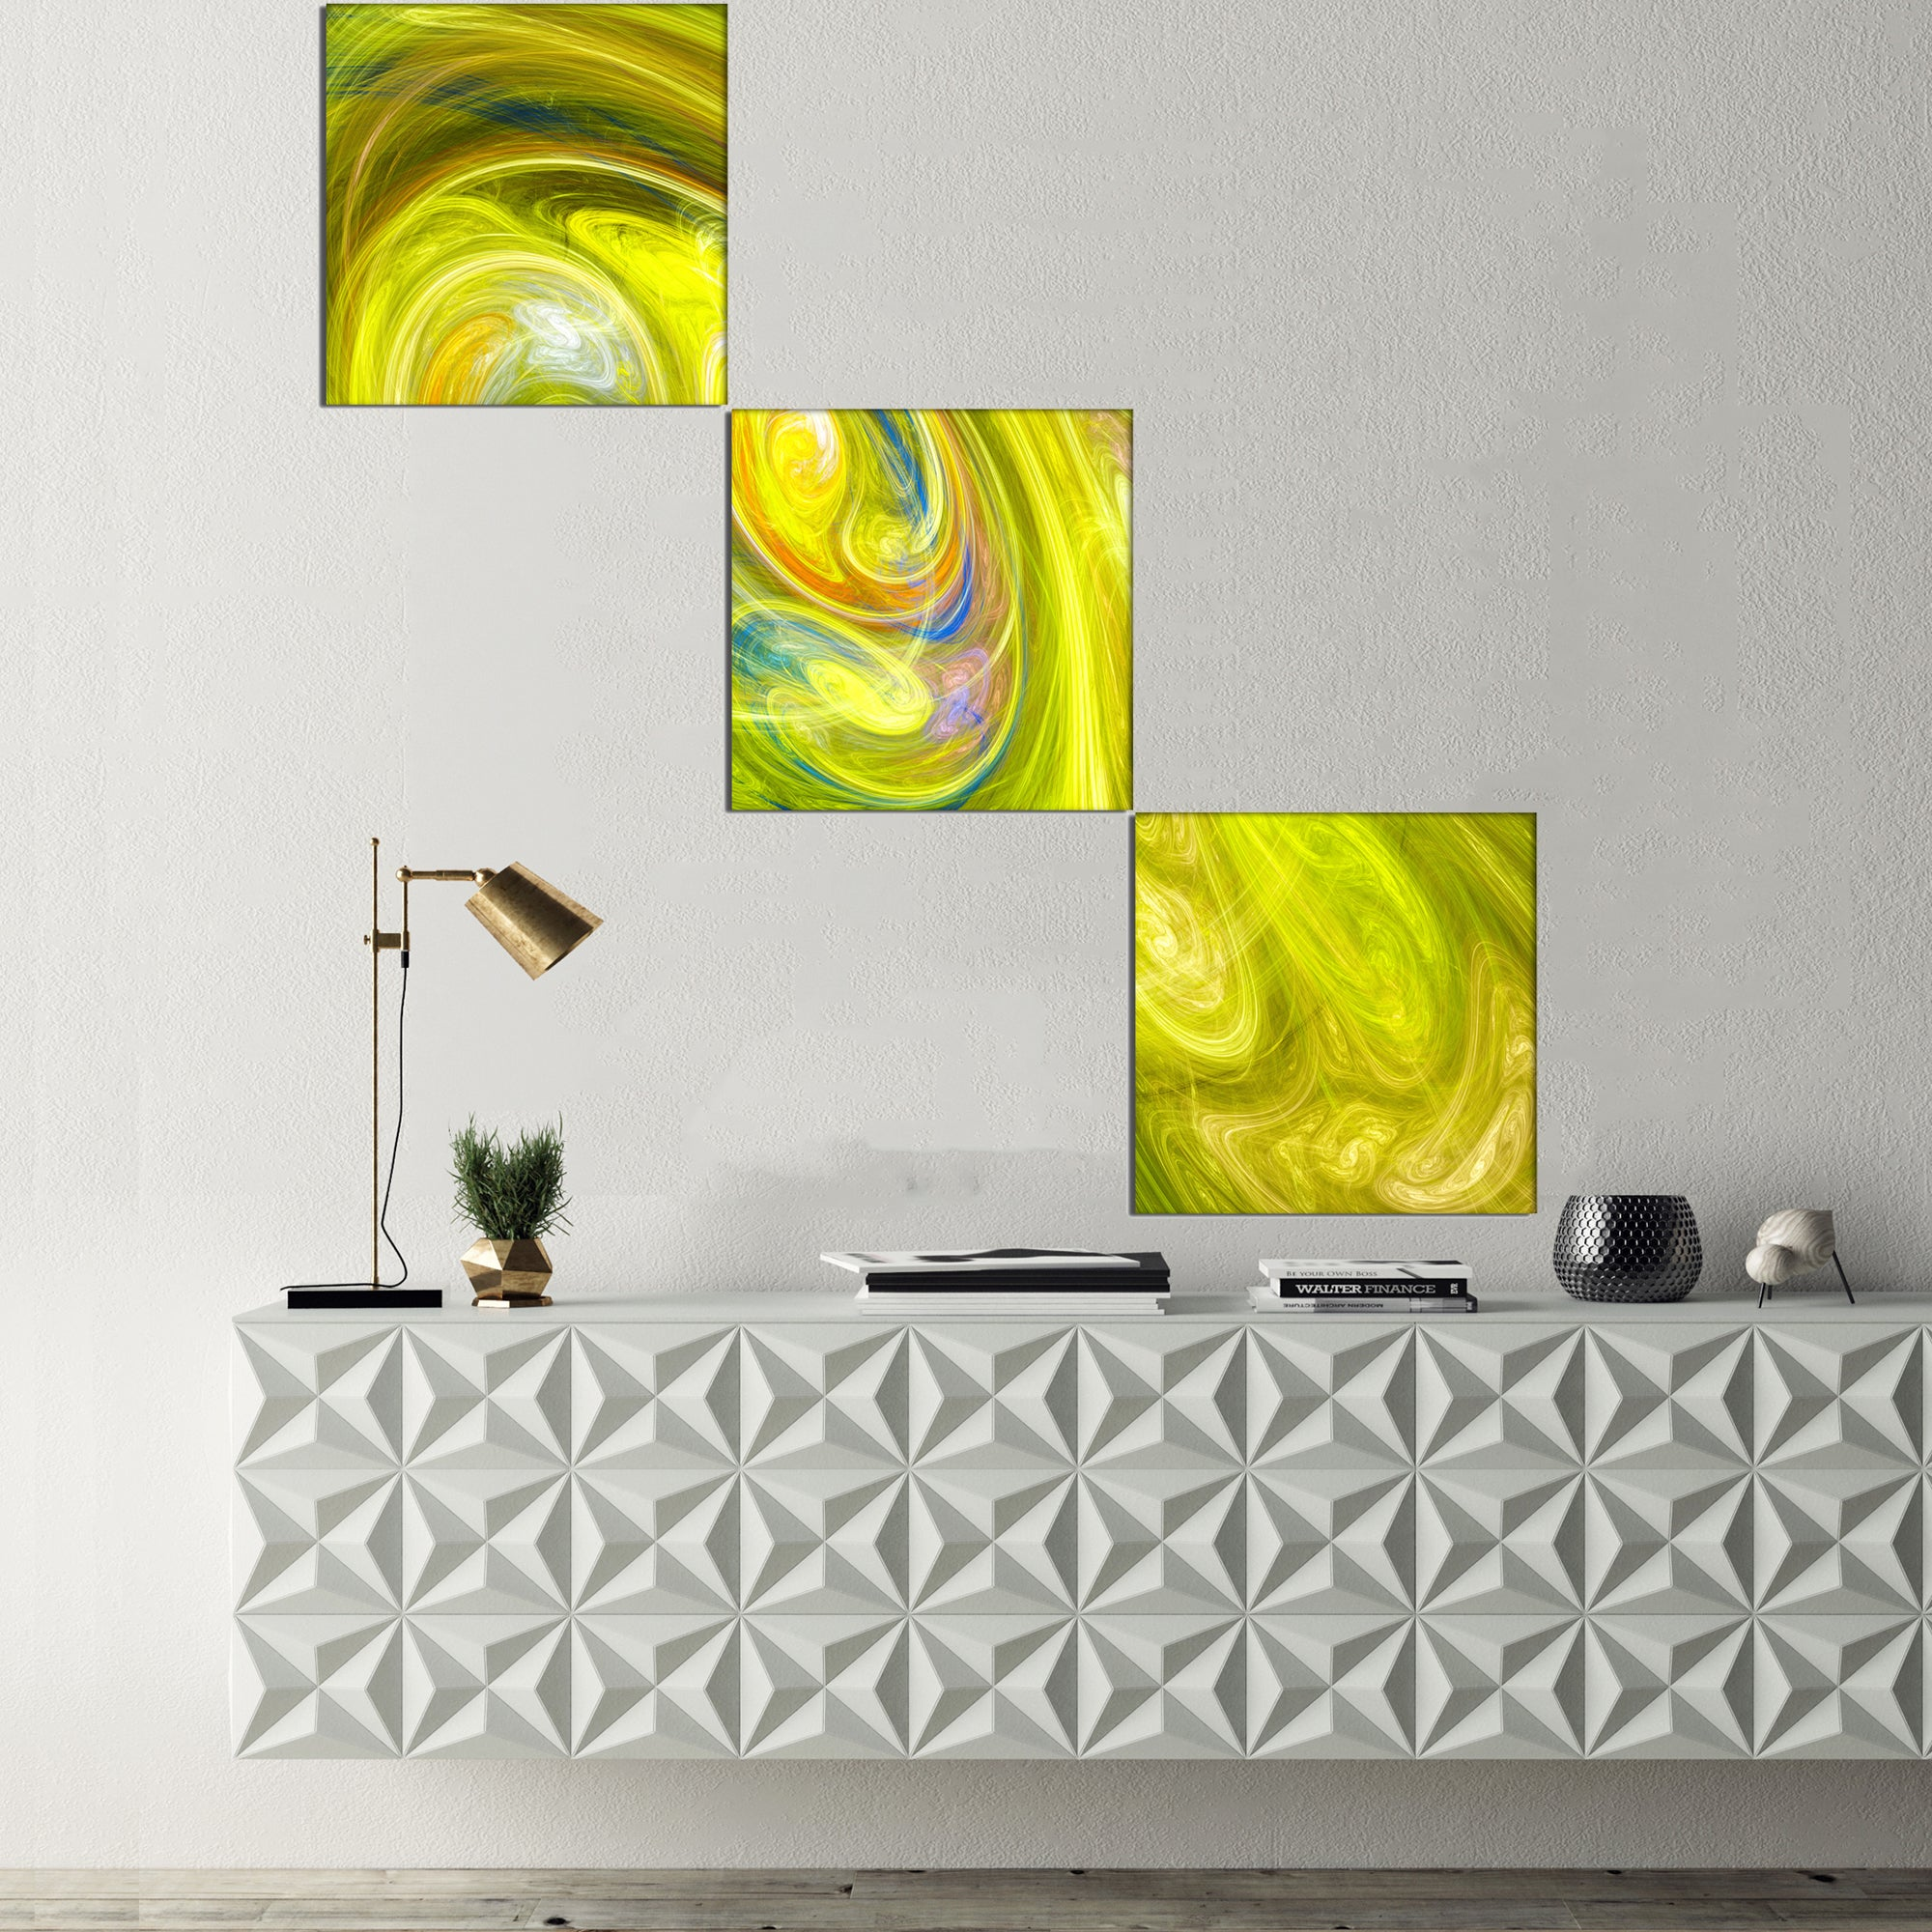 Fantastic Diamond Wall Art Frieze - The Wall Art Decorations ...